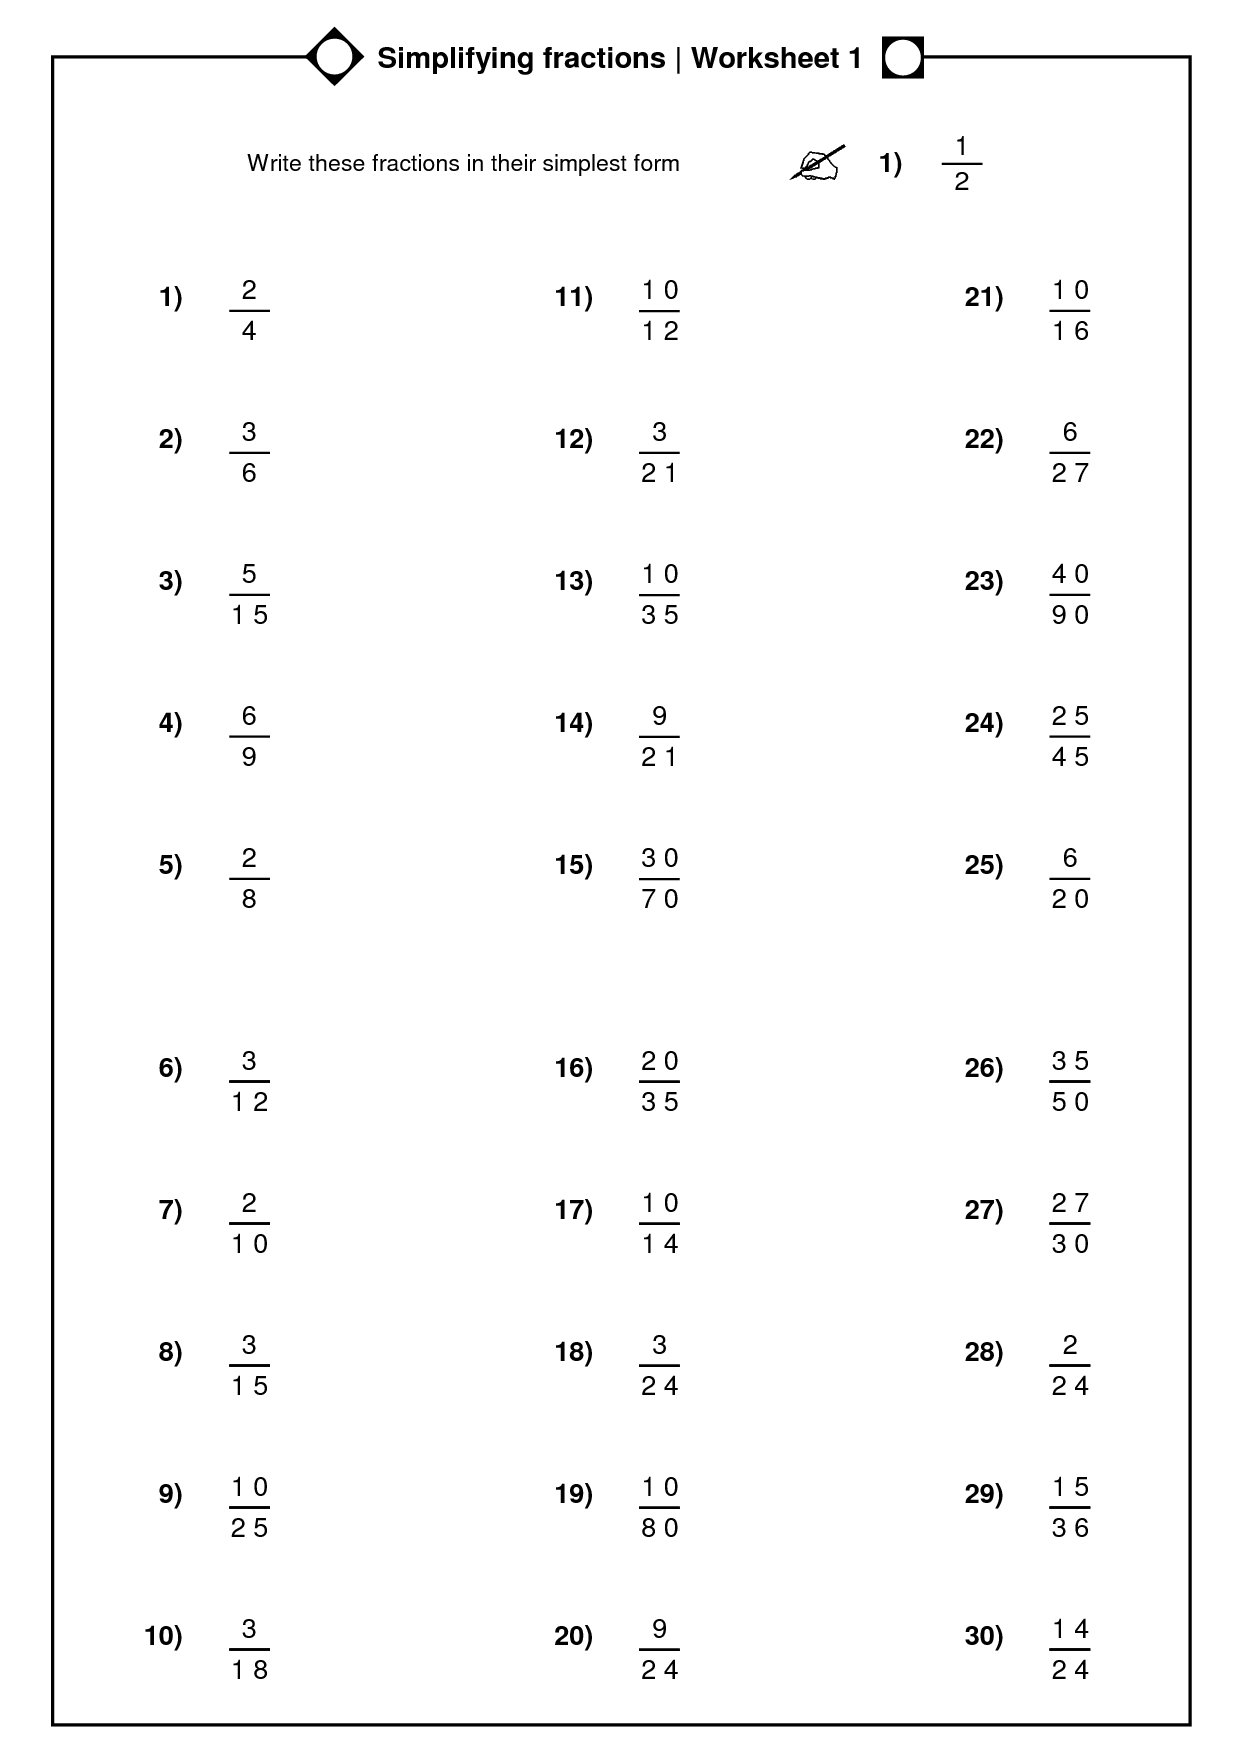 fractions simplest form worksheet  10 Best Images of Fraction Worksheets With Answer Key ..